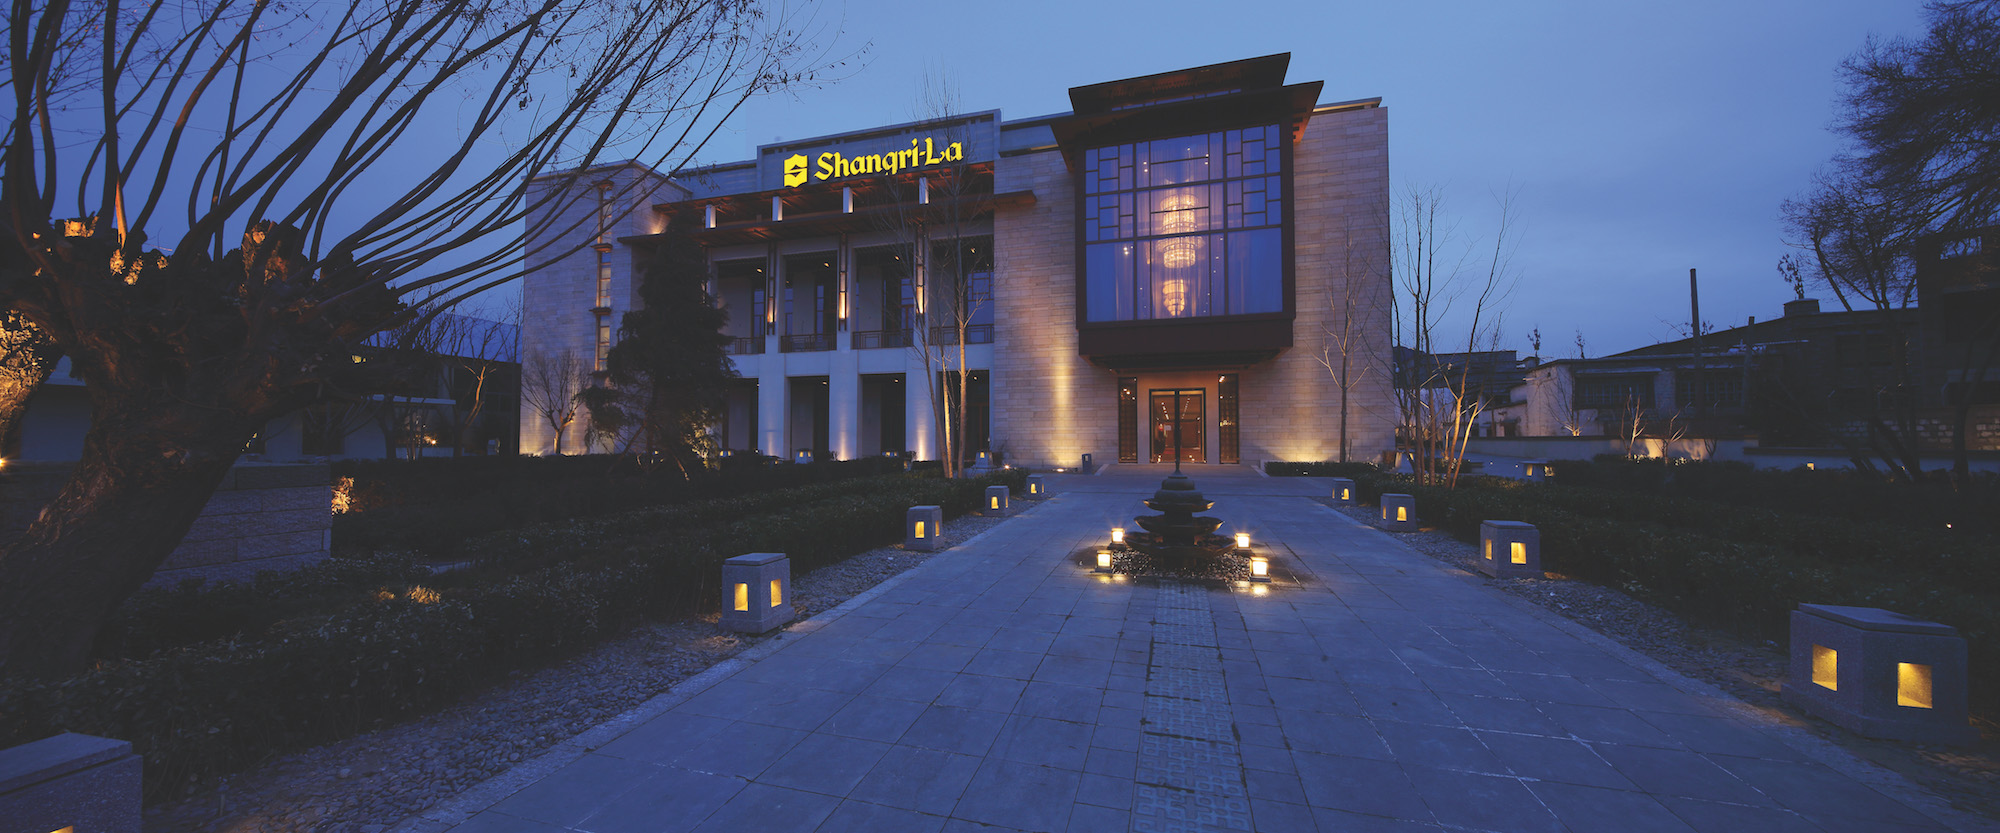 Shangri-La Hotel (Shangri-La International)